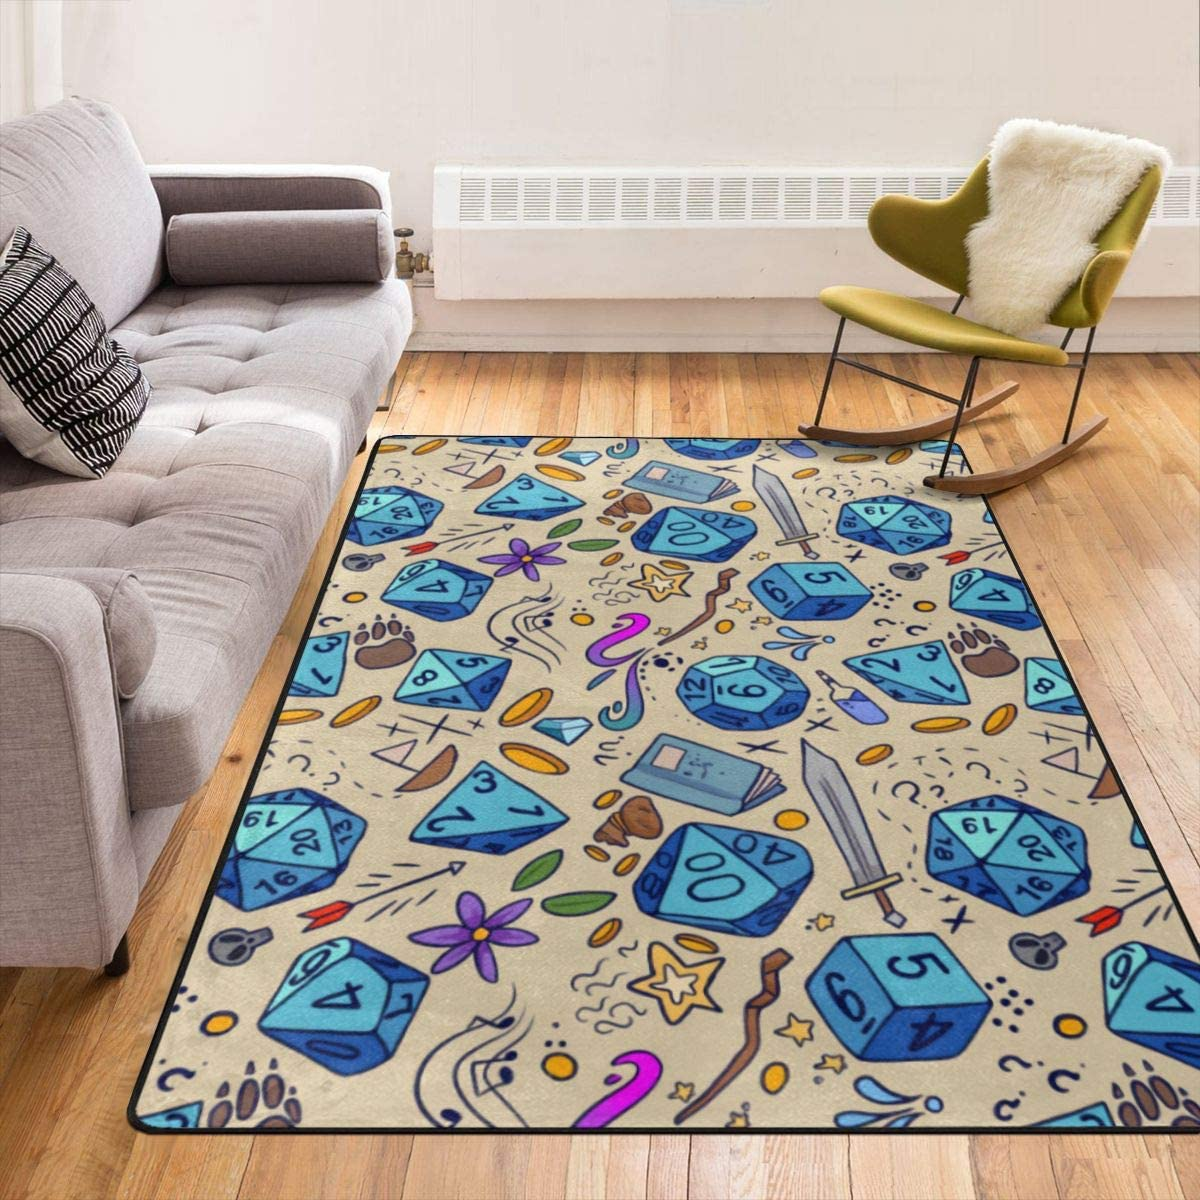 Super Soft Modern DND Pattern Area Rugs Living Room Carpet Bedroom Rug for Children Play Solid Home Decorator Floor Rug and Carpets 210 x 150 cm